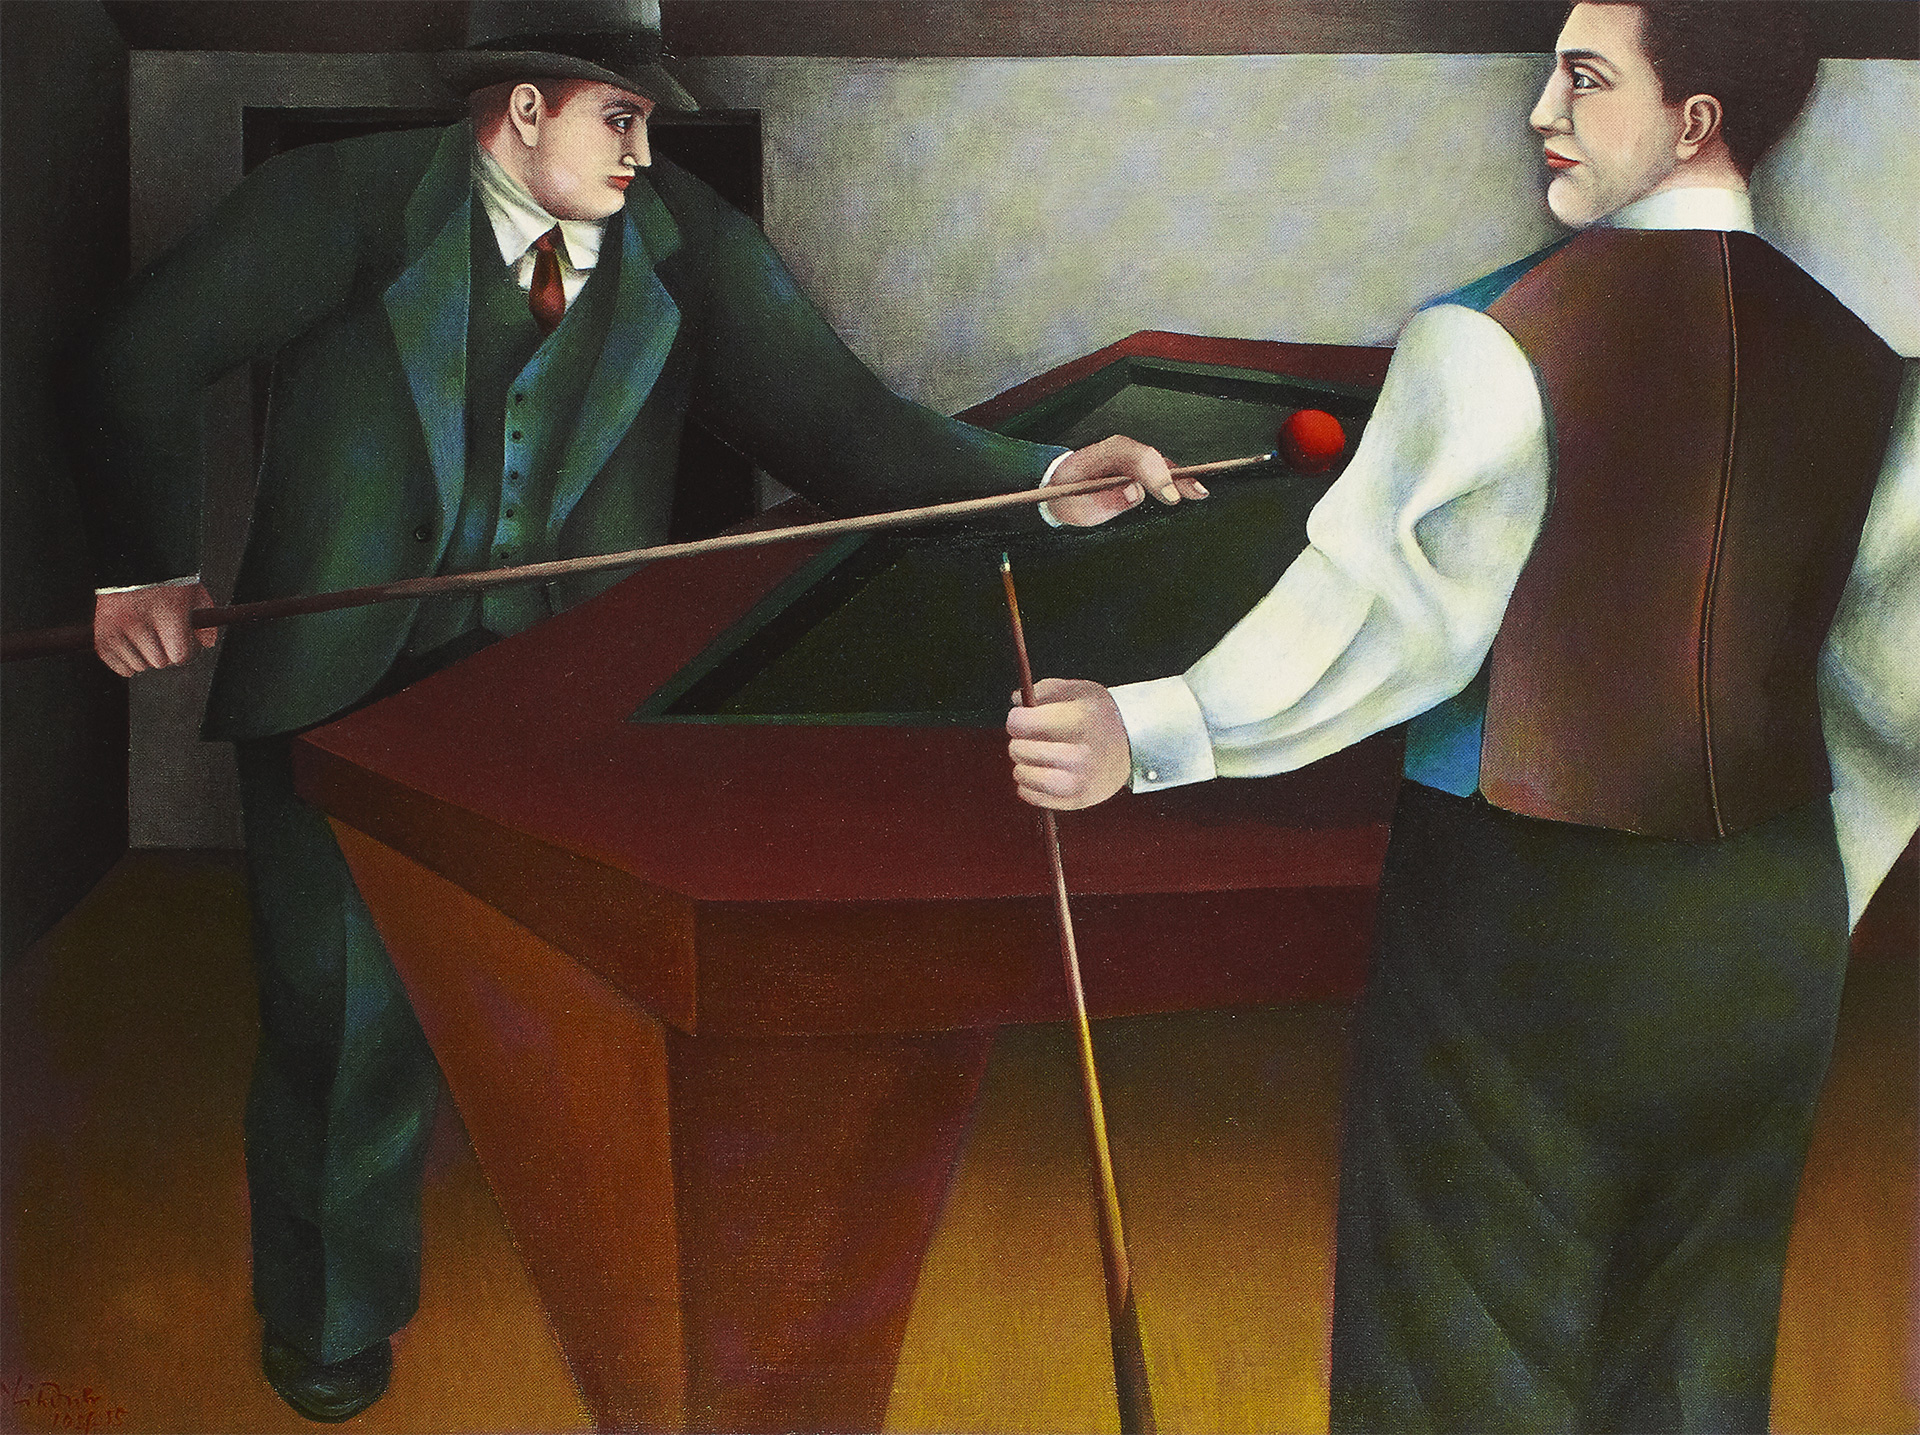 The Billiard (Billiards, The Billiard Players), 1954-55 grand format